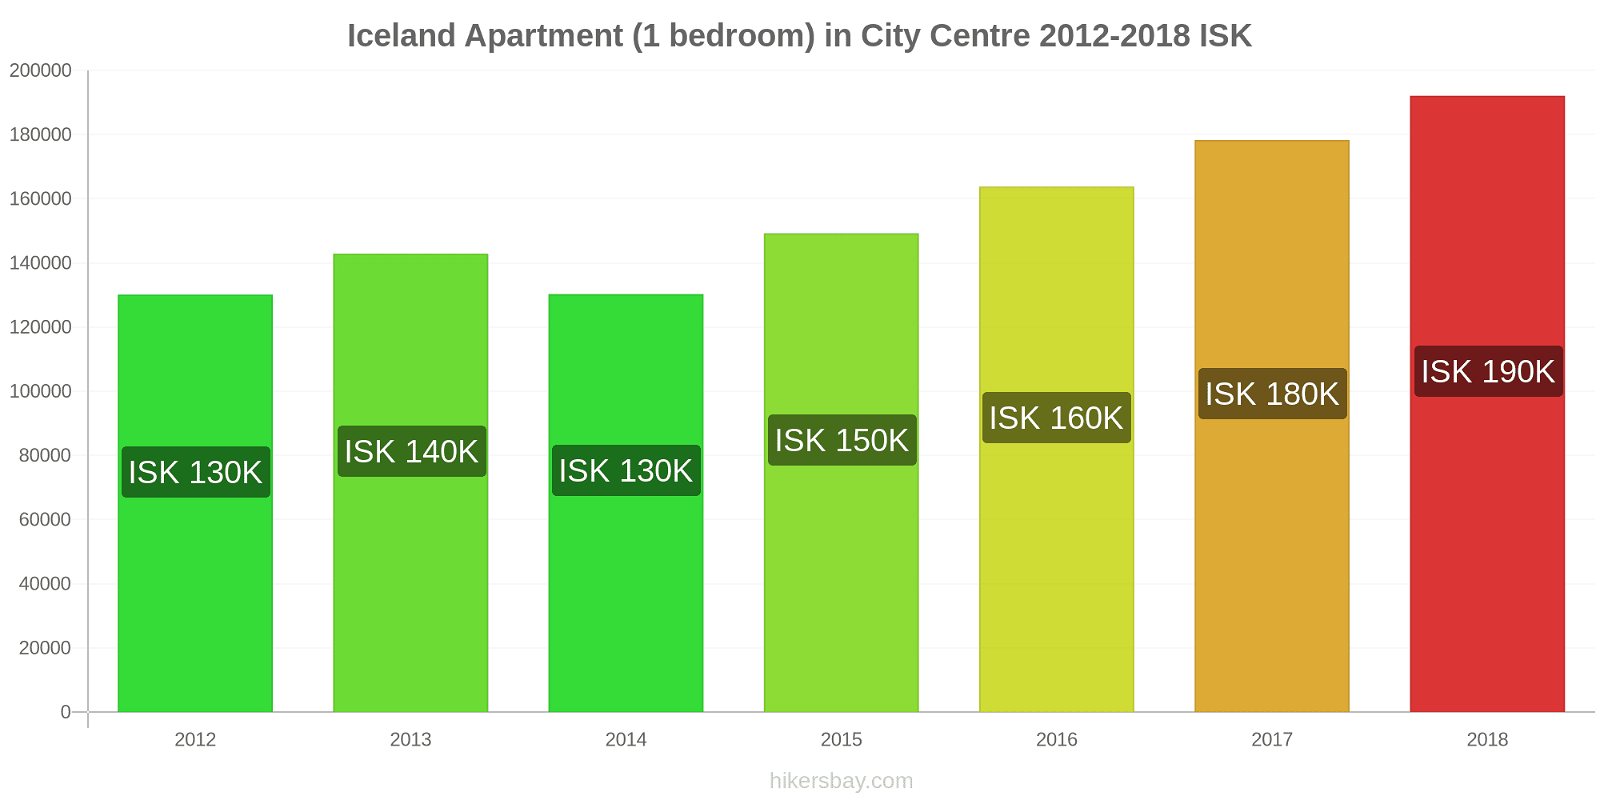 Iceland price changes Apartment (1 bedroom) in City Centre hikersbay.com